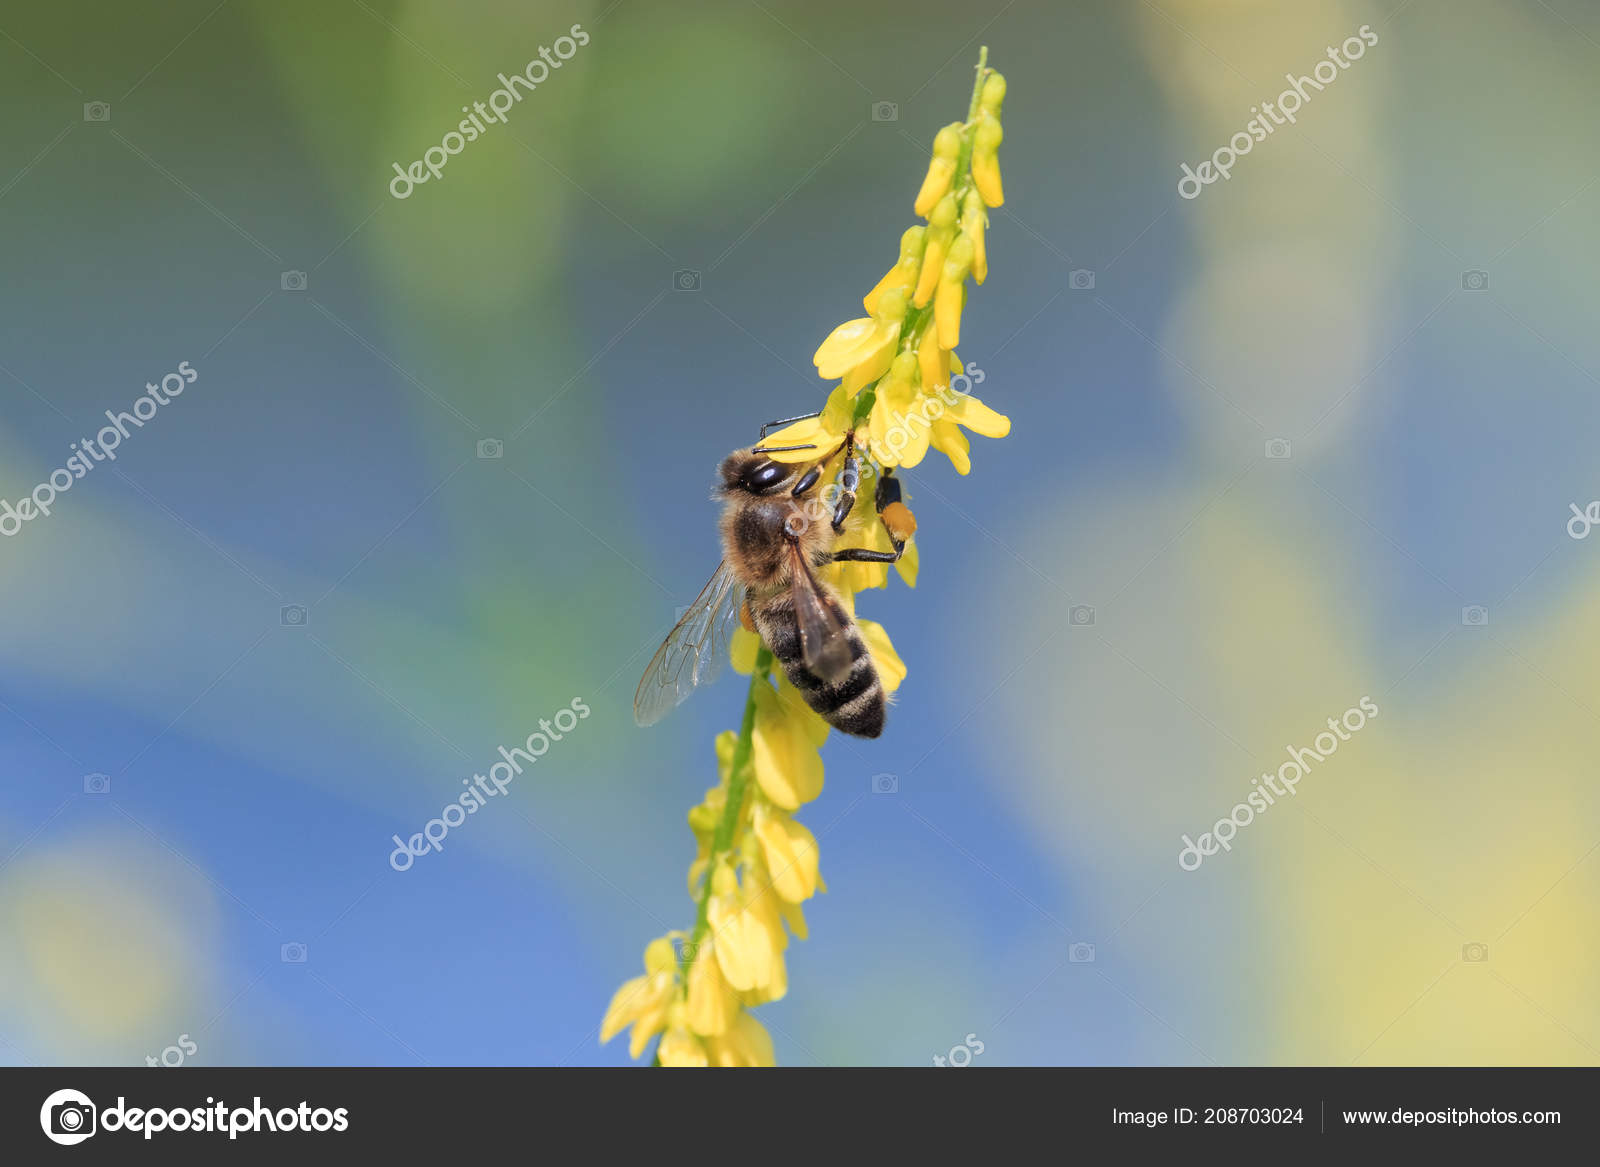 Honey Bee Collects Nectar Yellow Sweet Clover Flowers Blurred Blue